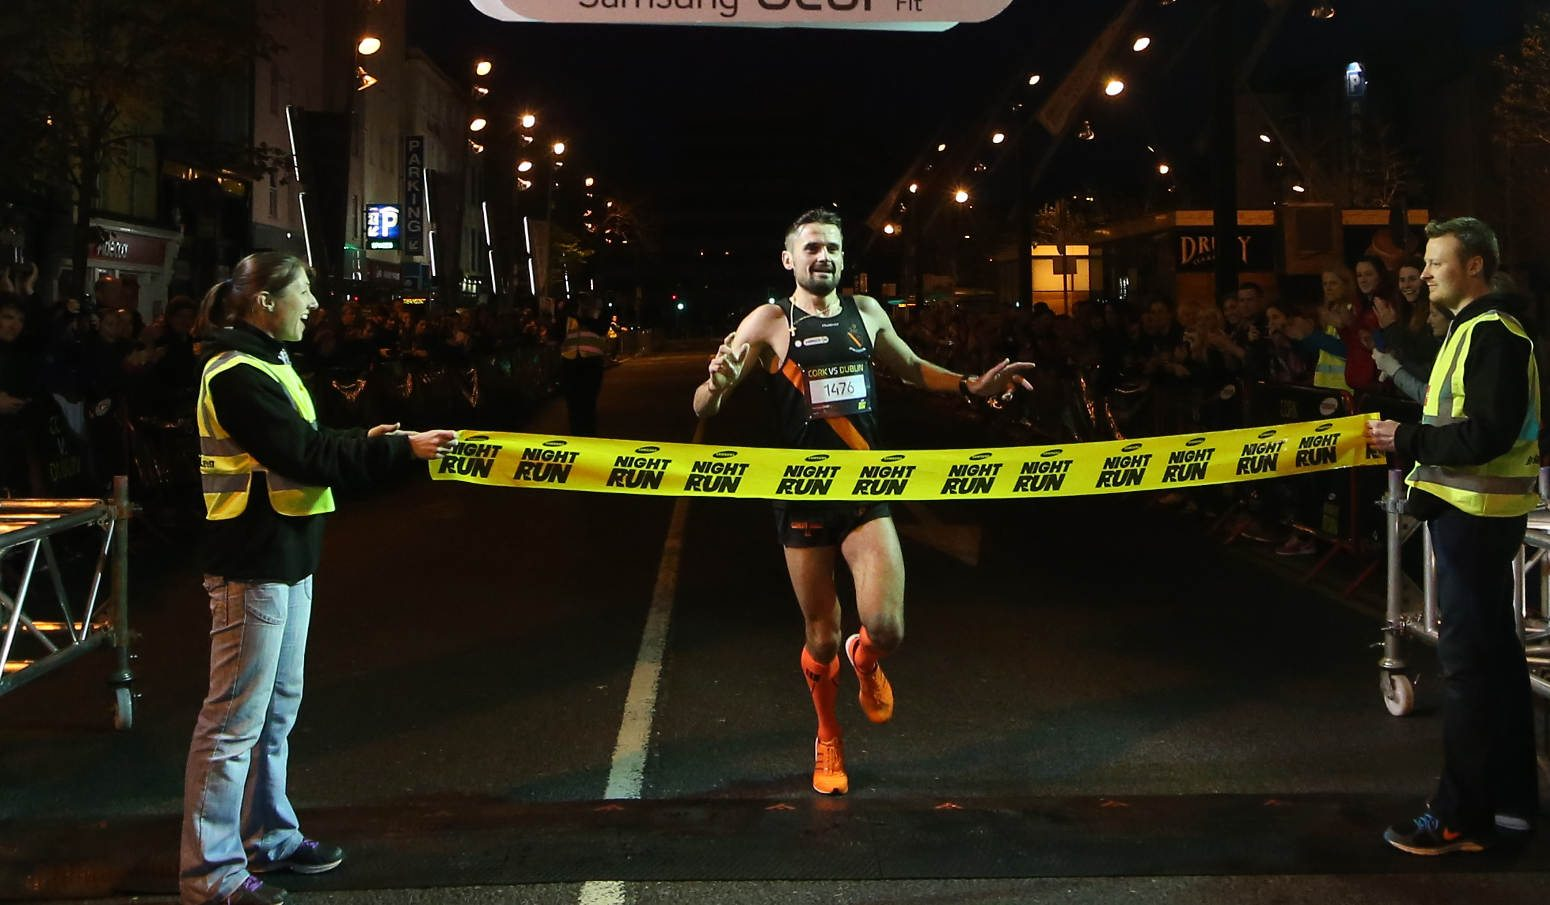 Dublin Night Run 2016